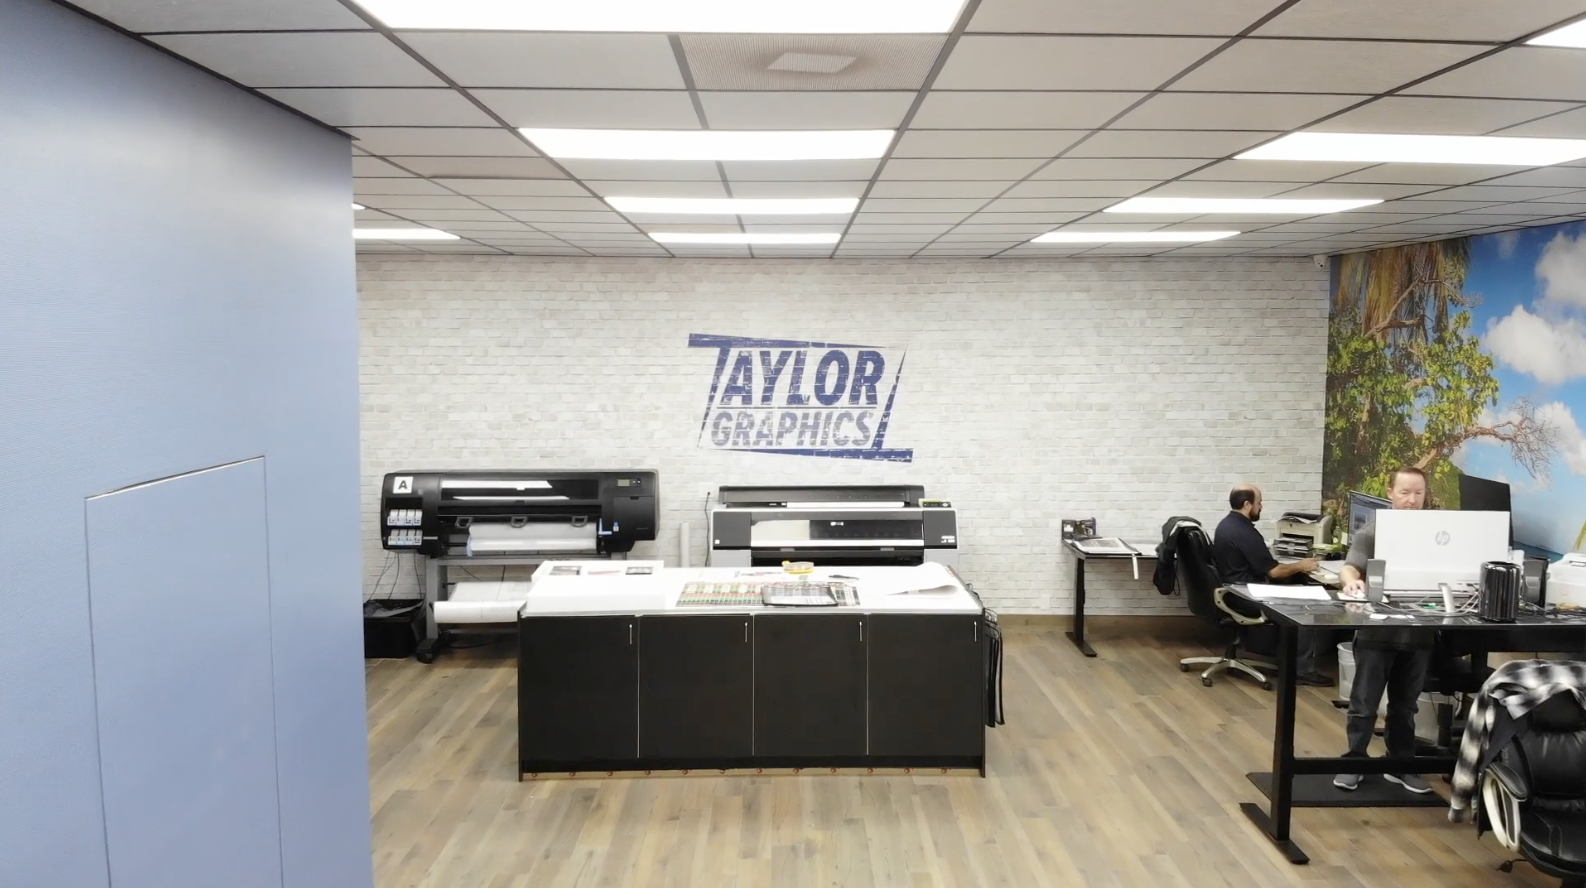 taylor logo office